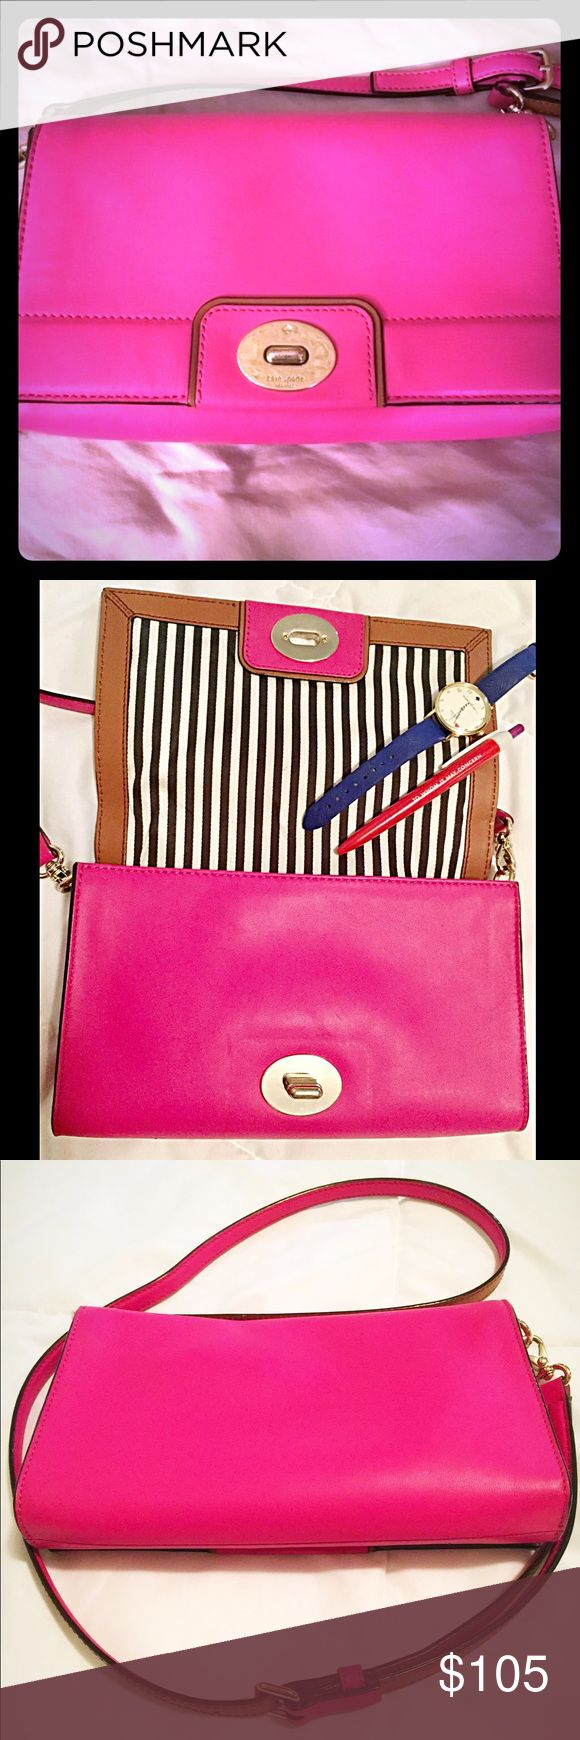 """kate spade Cross-body Purse This beautiful kate spade Hot Pink bag was purchased at Nordstrom. Used a few times, clasp closure has signs of wear other than that she's  in excellent condition. 9""""W x 6""""H x 1""""D. Very roomy for a cross-bag. kate spade Bags Crossbody Bags"""